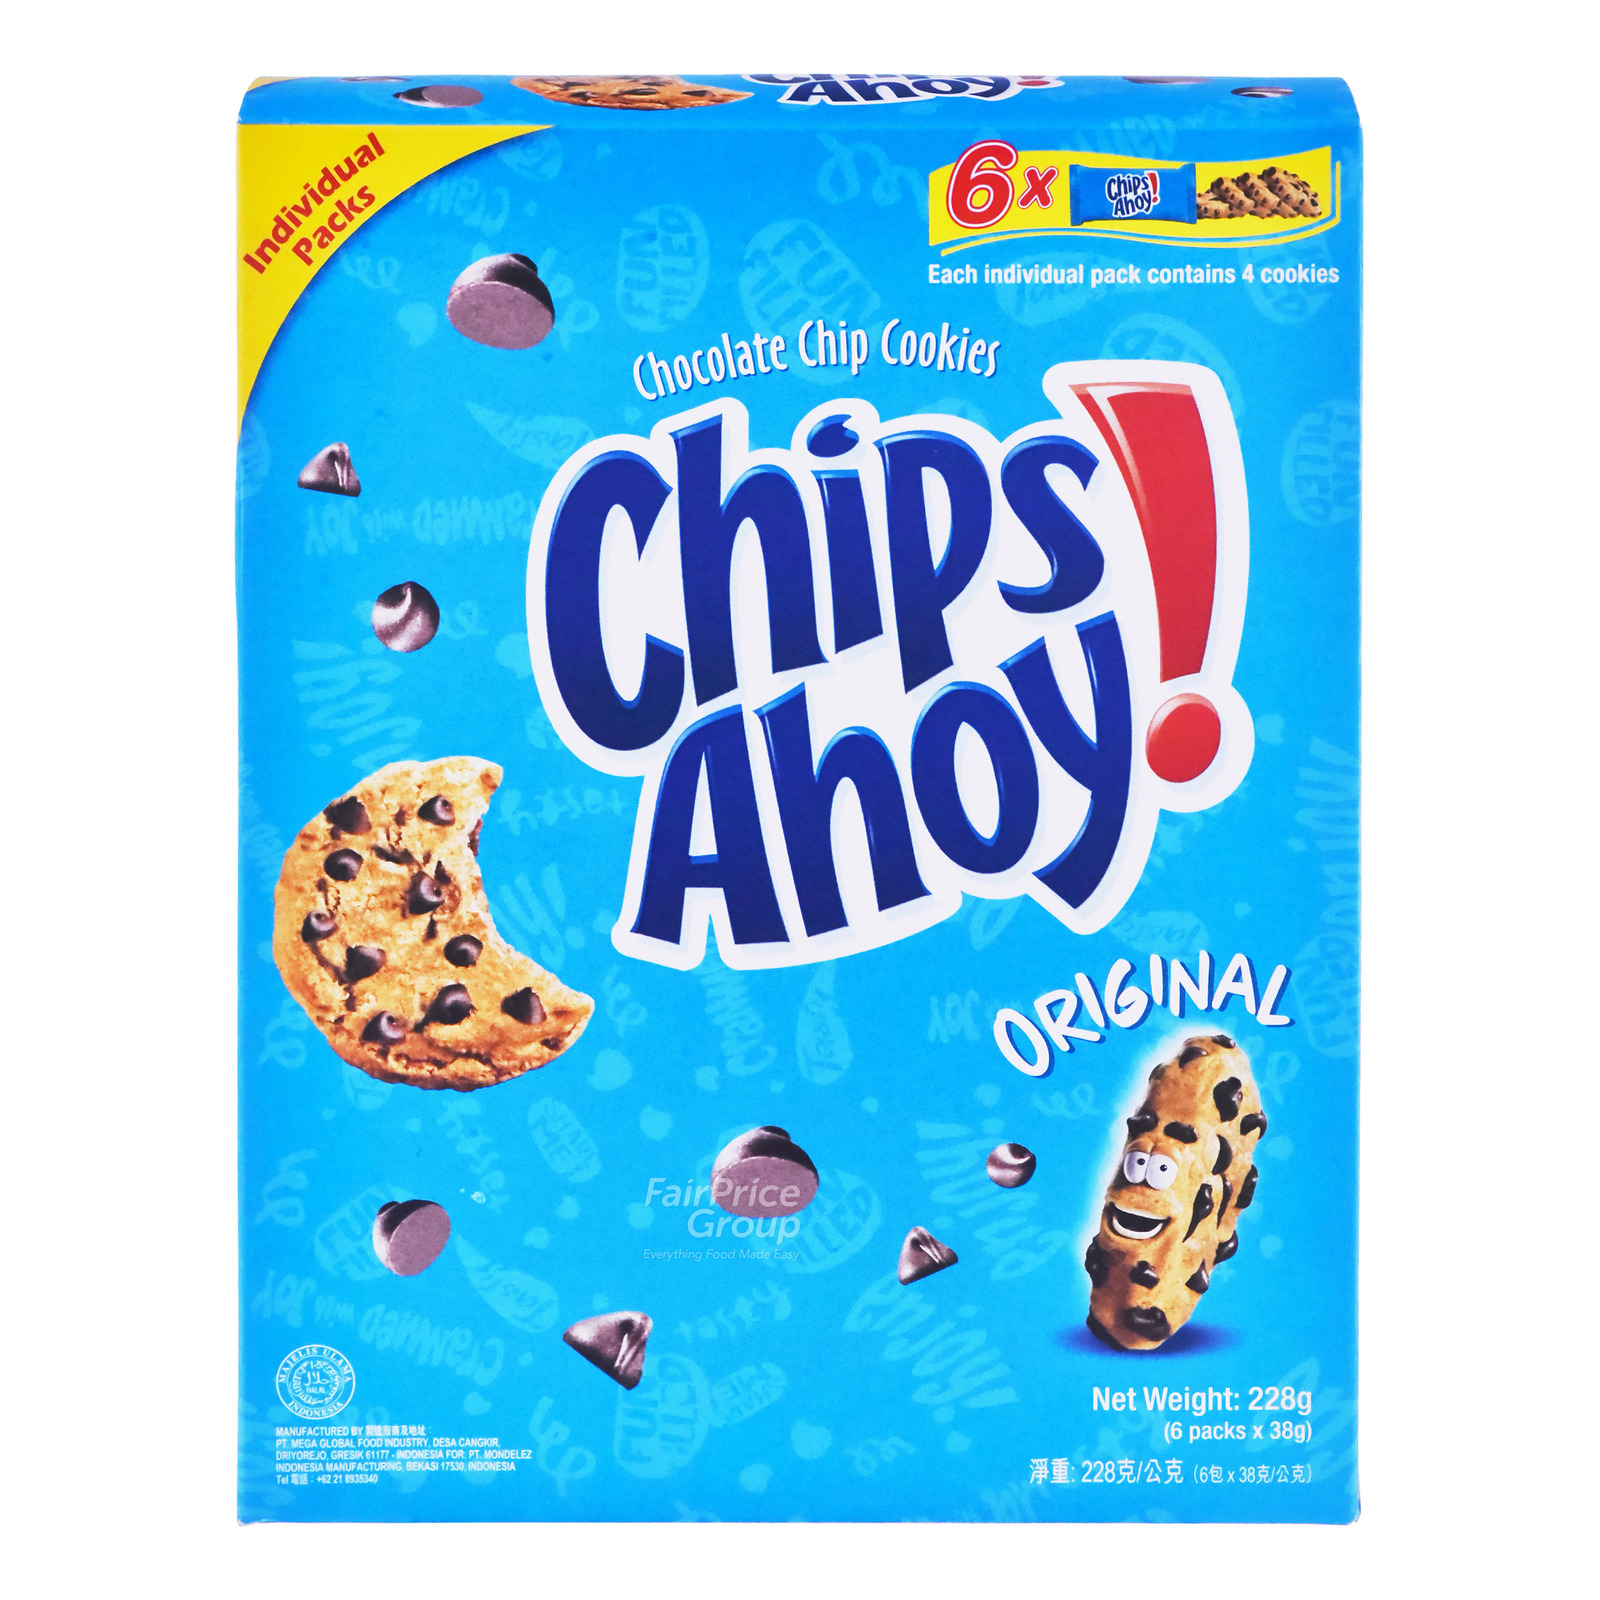 CHIPS AHOY Chocolate Chips Cookies - Original 6sX38g